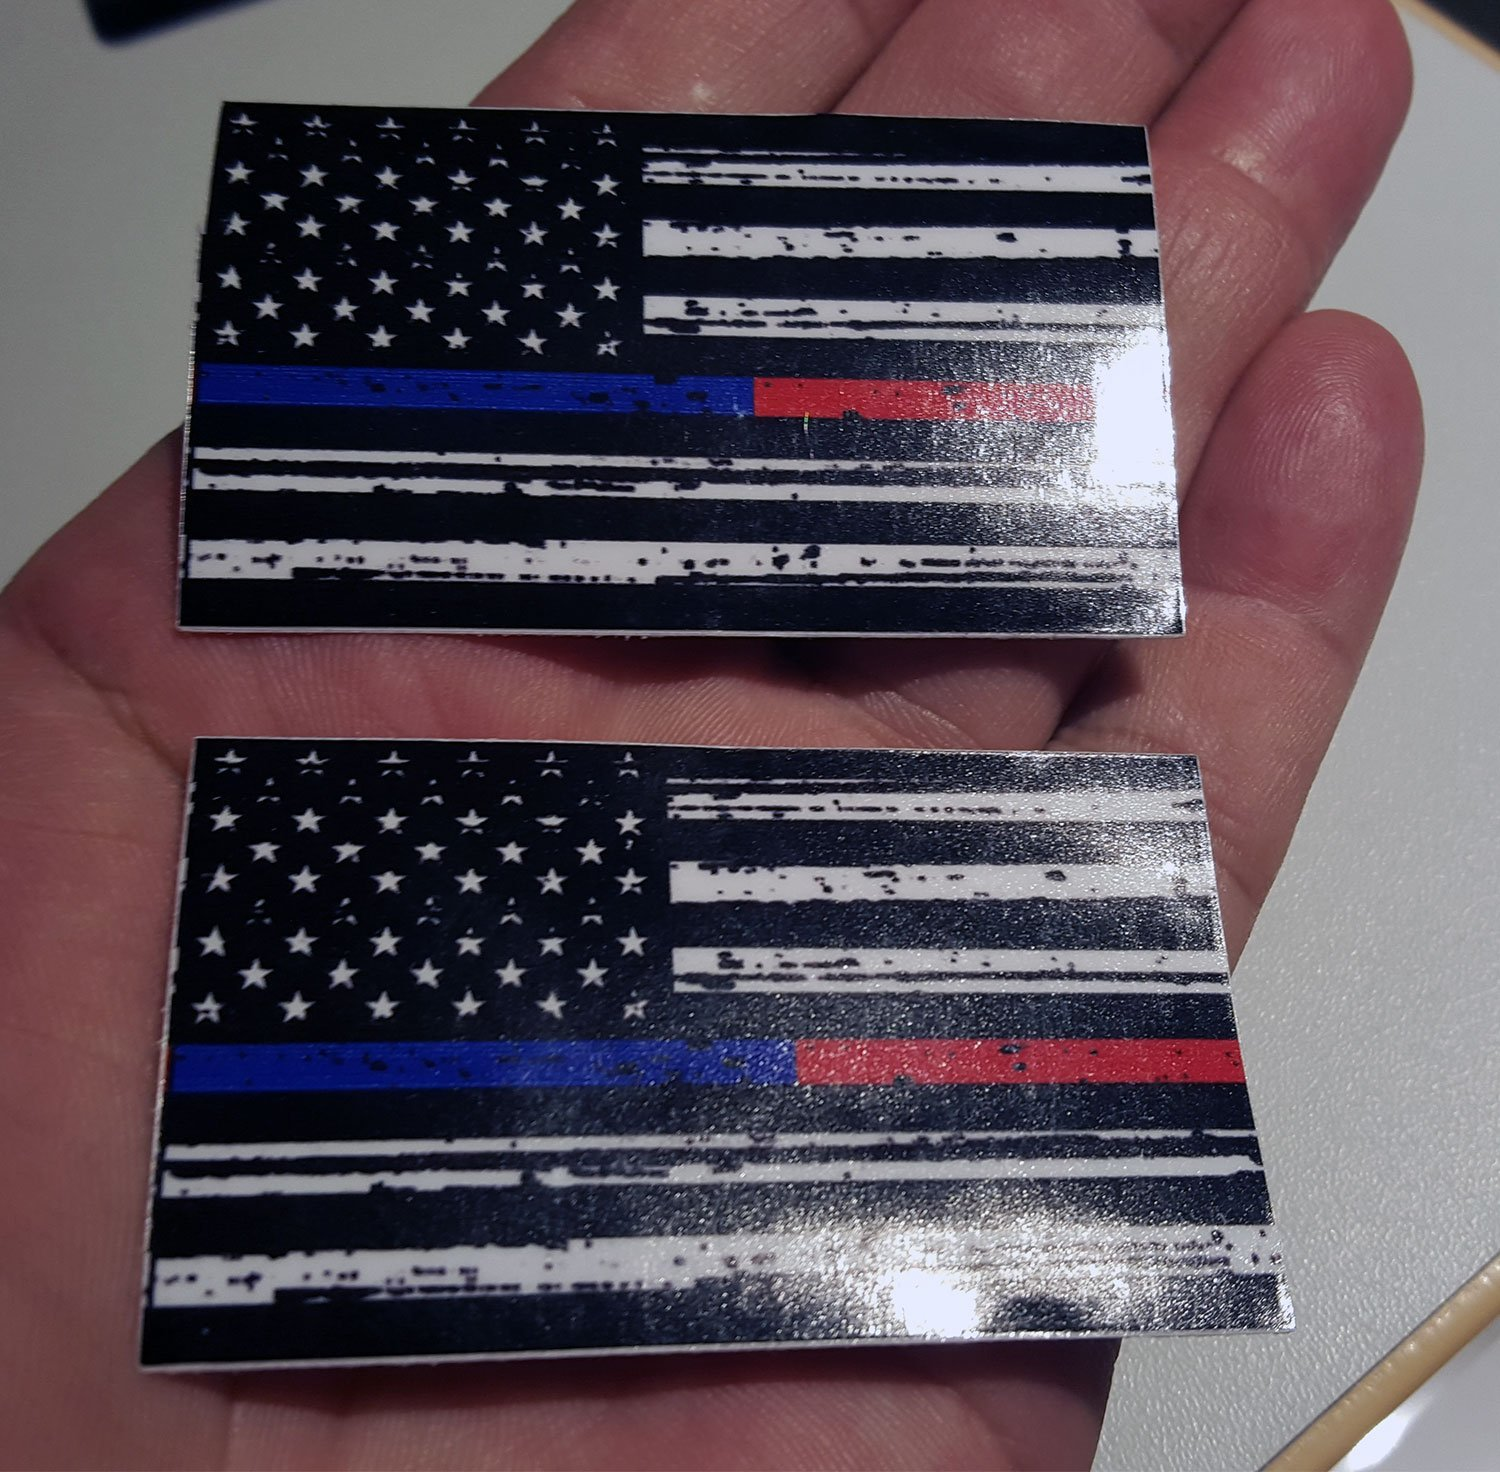 """MINI Distressed Tattered Stressed 2.5""""x1.5"""" THIN BLUE LINE POLICE & THIN RED LINE FIREFIGHTER DECAL Respect and Honor Law enforcement First Responder US flag DECAL USA (2 pack)"""